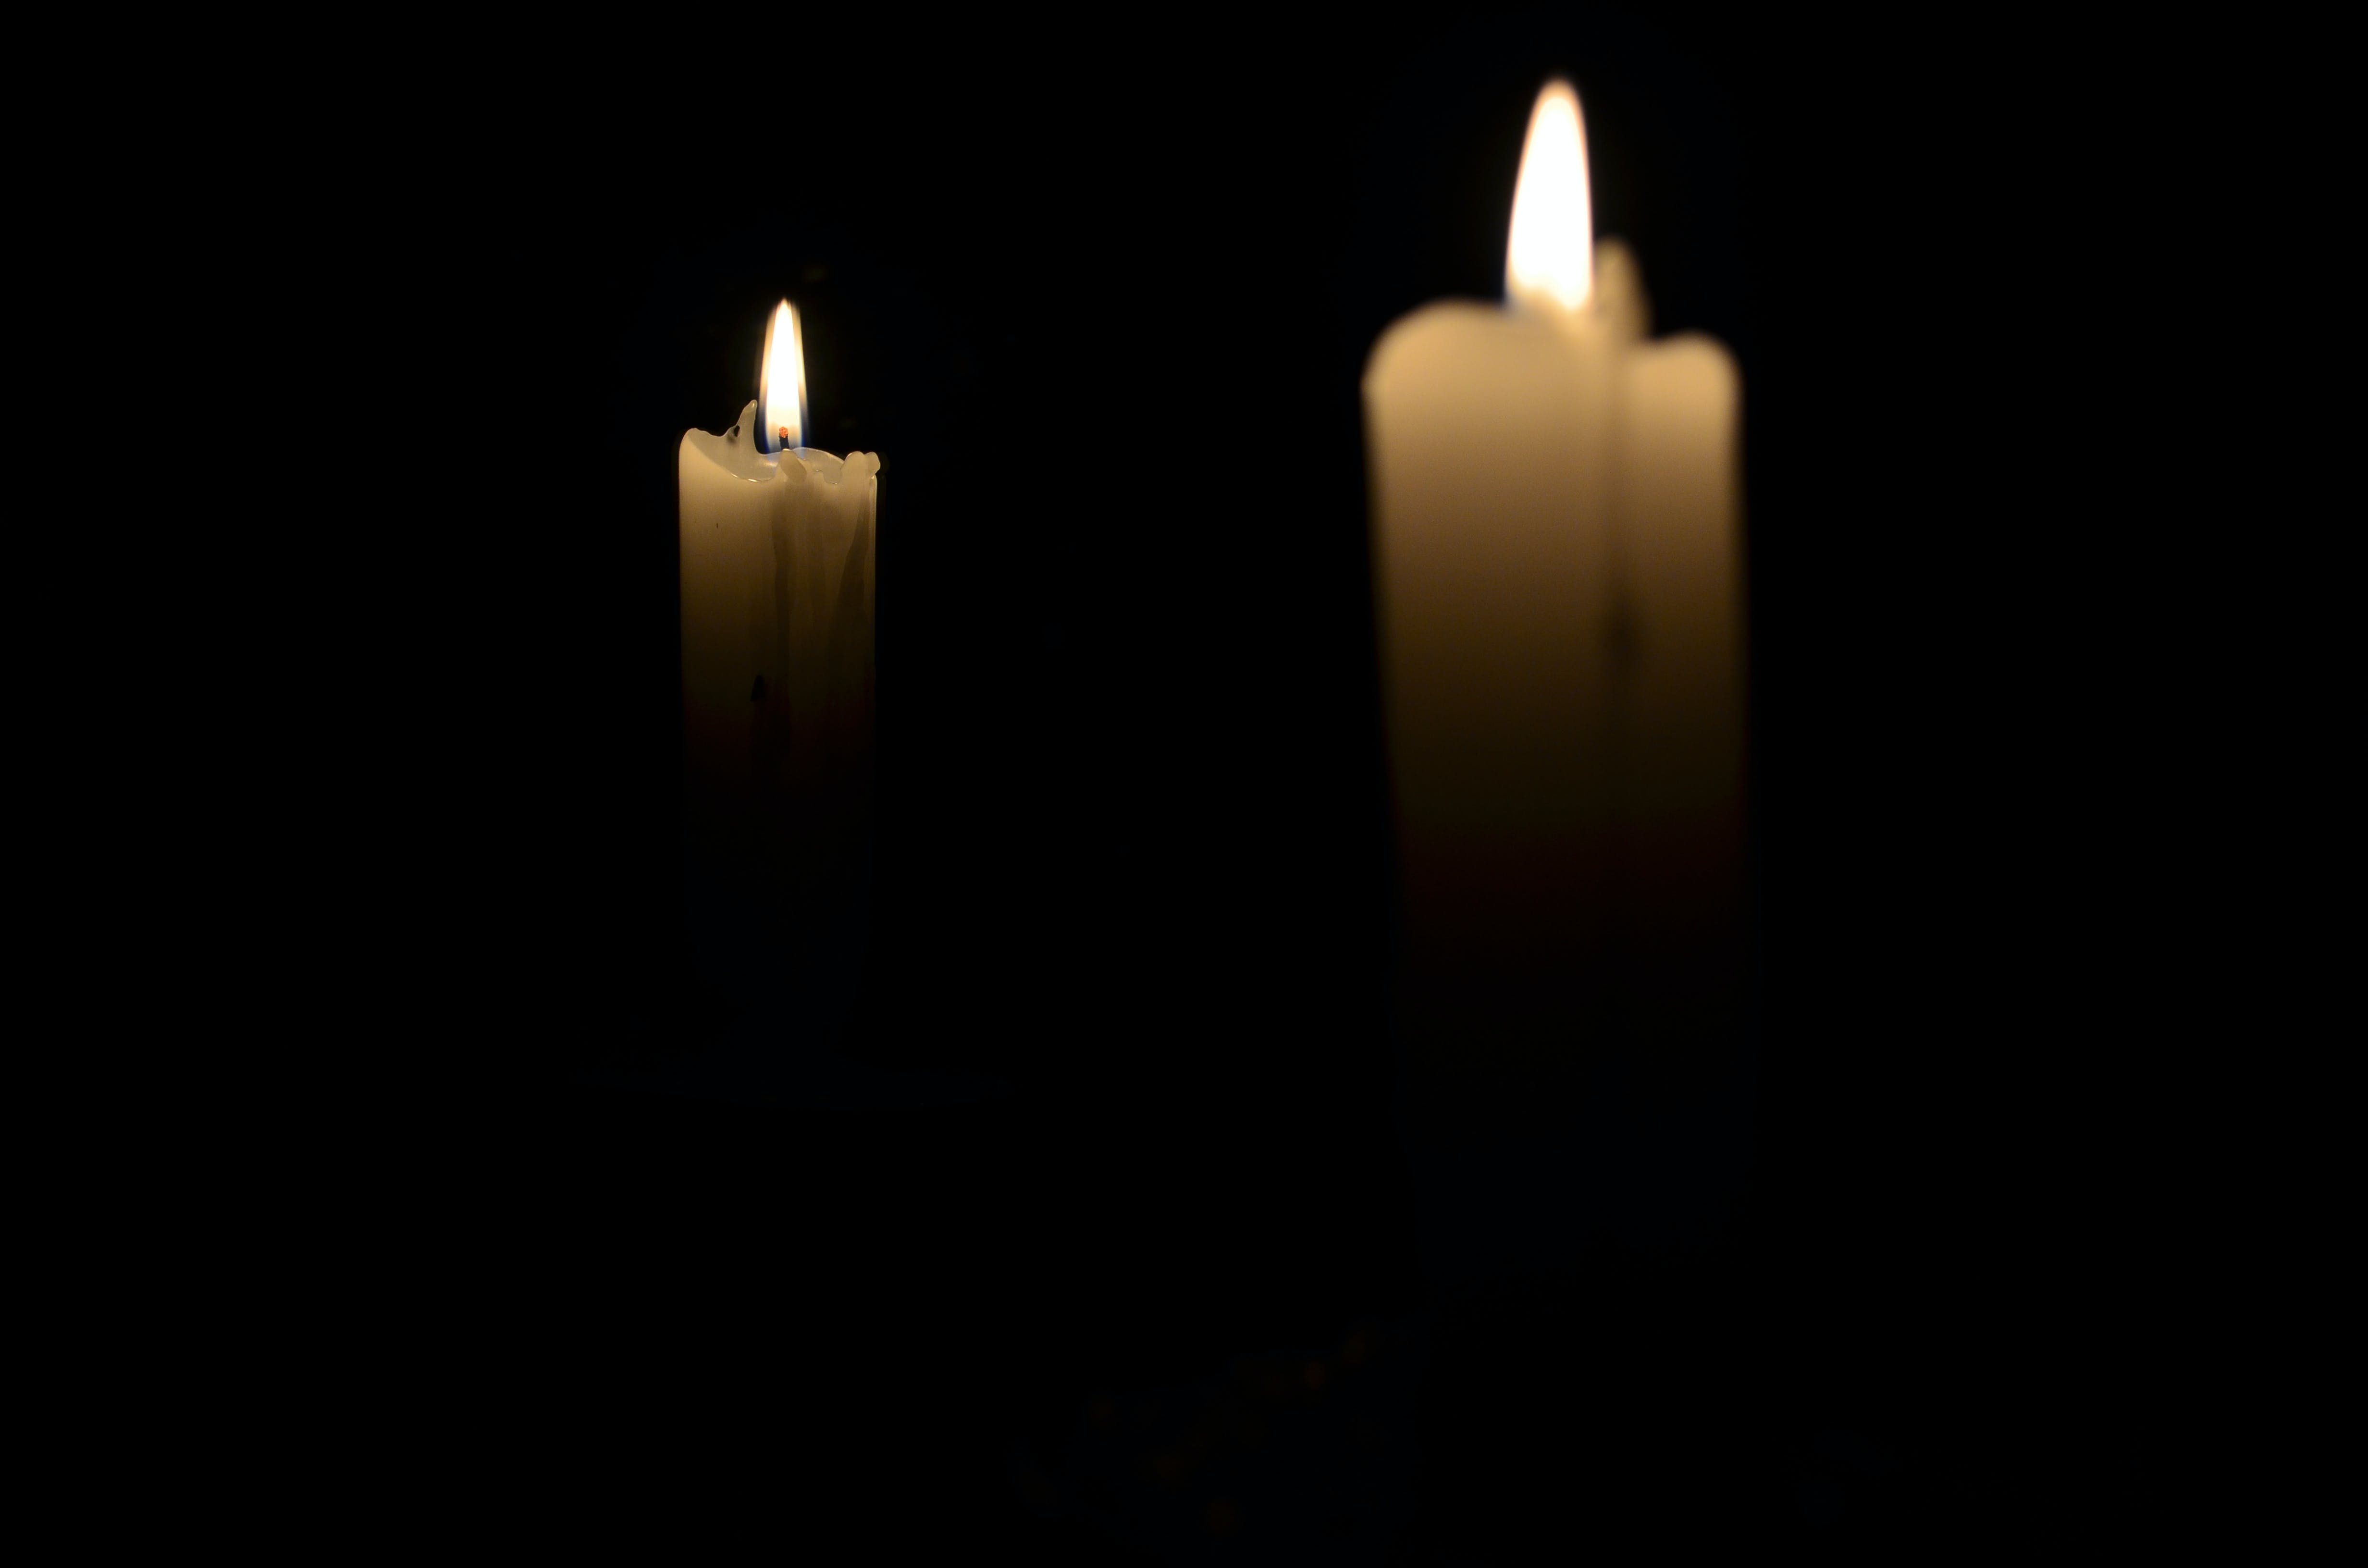 Free stock photo of bokeh, candlelight, candles, dark room